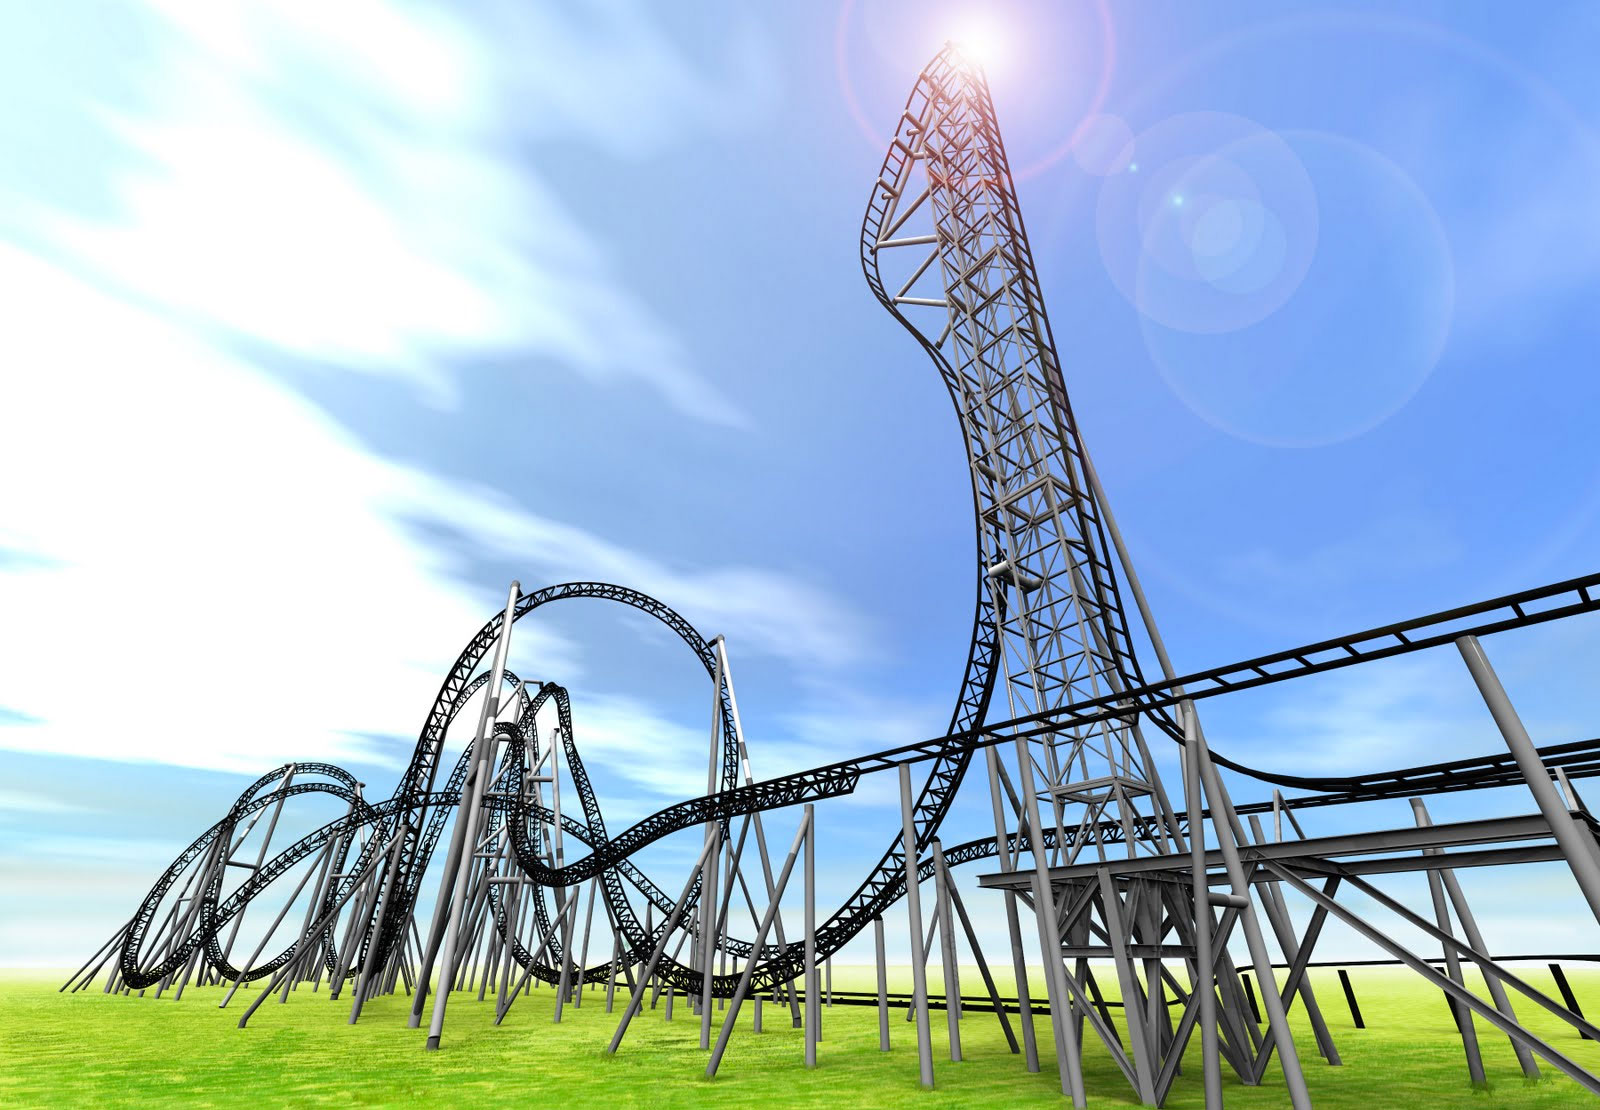 Fuji Q Highland Fun For Thrill Seekers And Families